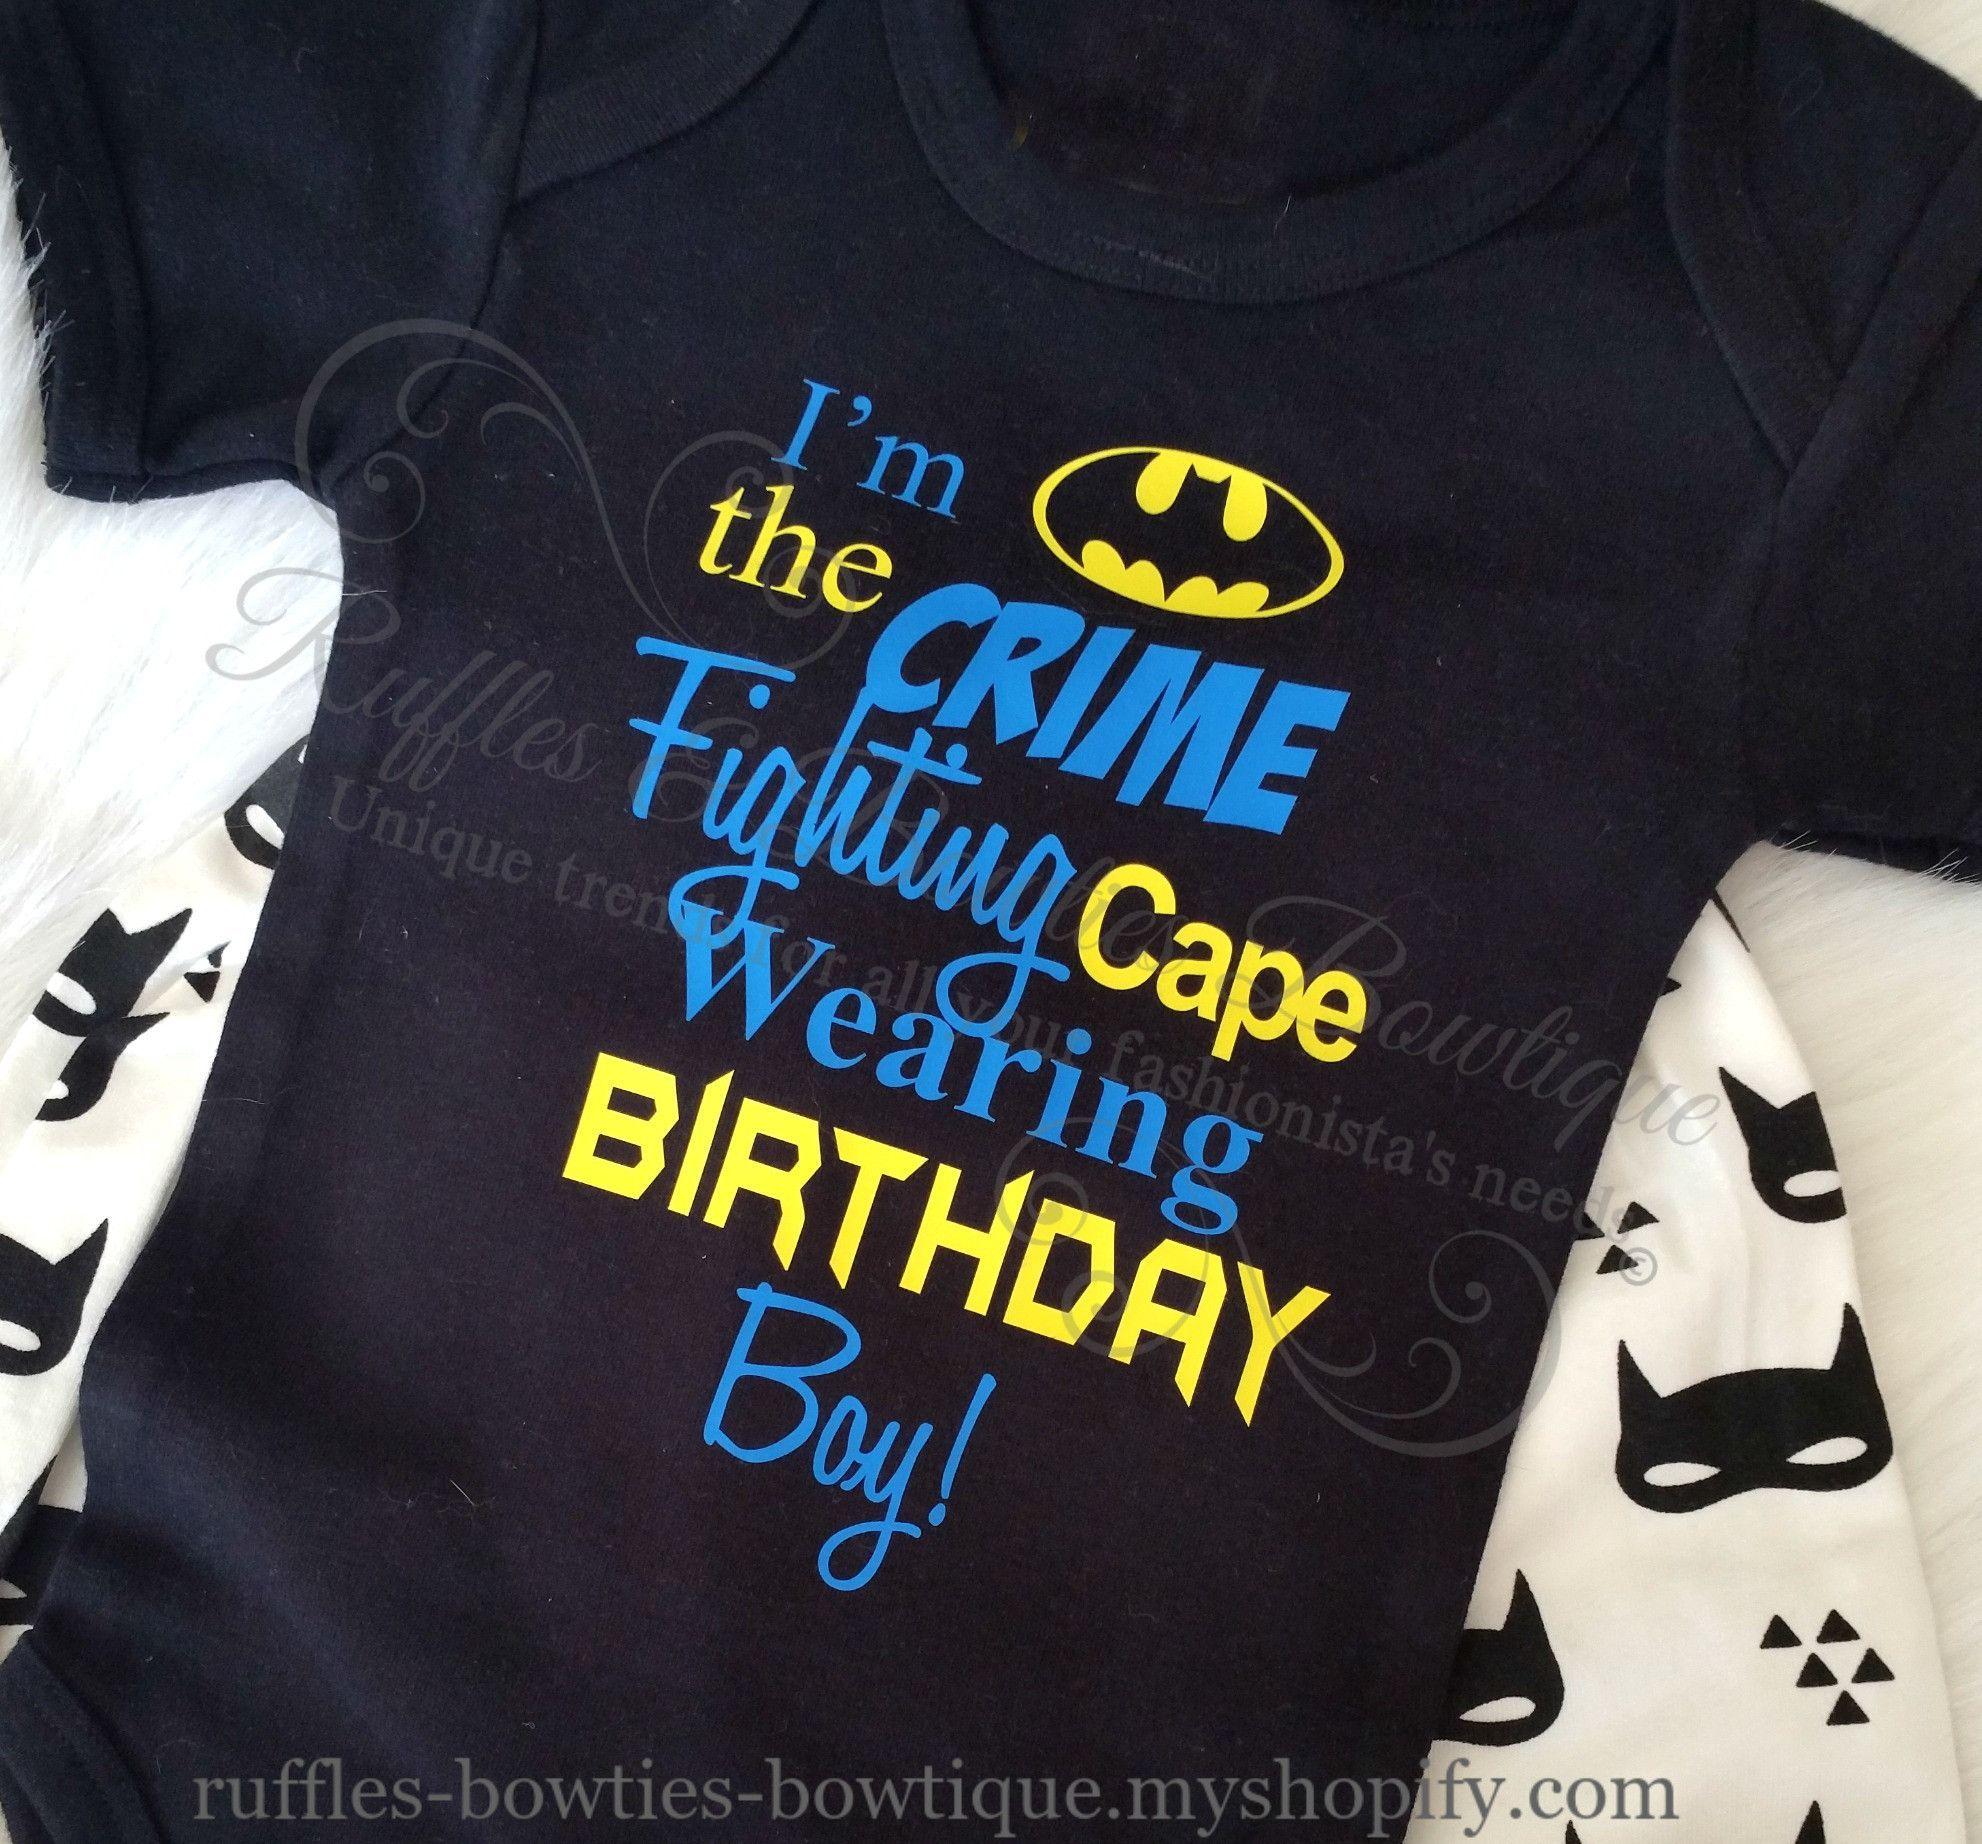 Batman Birthday Shirt Im A The Crime Fighting Cape Wearing BoySuper Hero Superhero Onesie Baby Boy Smashcake